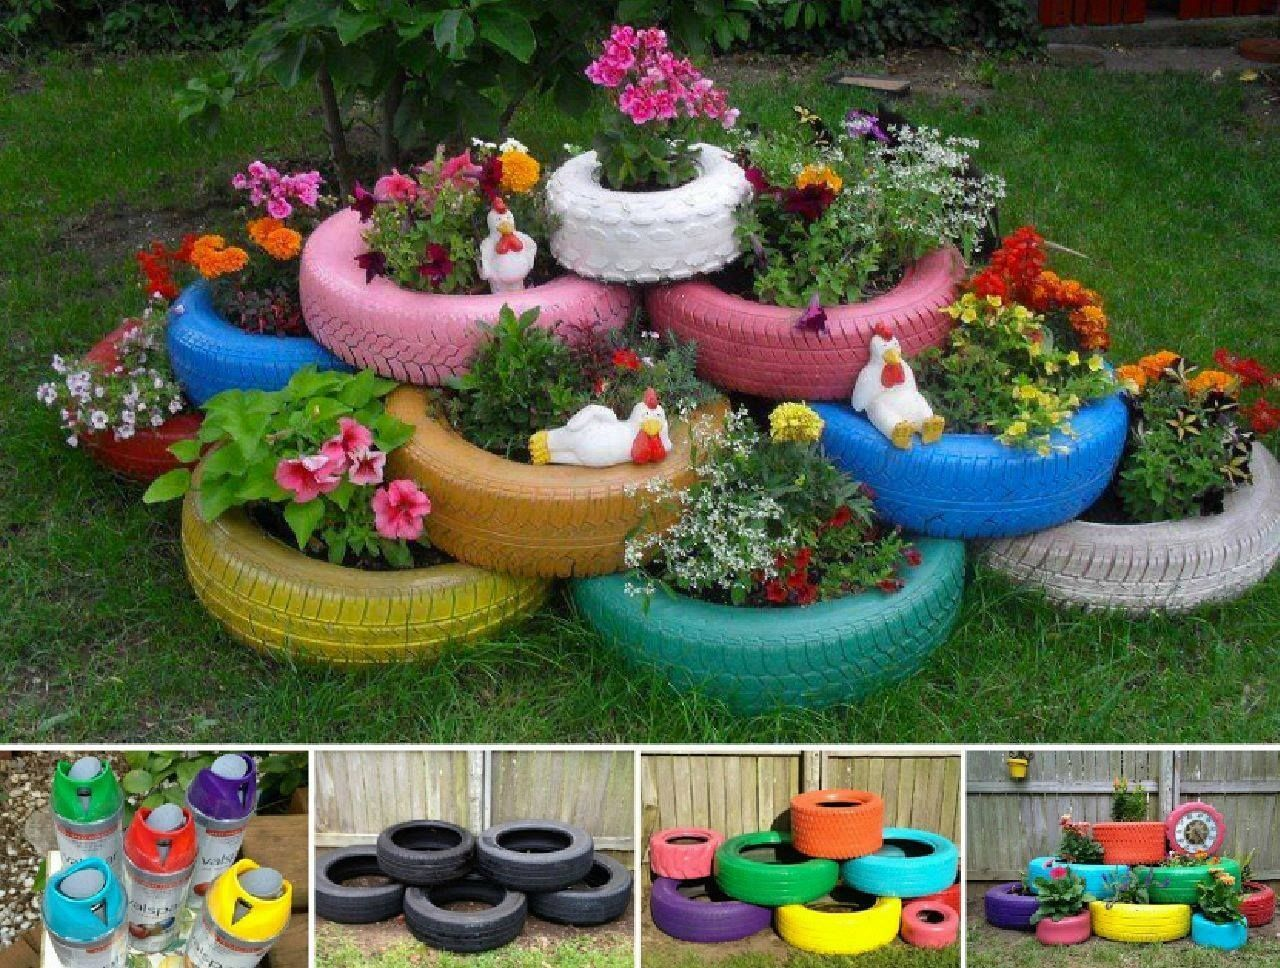 Garden Ideas On Pinterest best 25 landscaping ideas ideas on pinterest Diy Tire Garden Pictures Photos And Images For Facebook Tumblr Pinterest